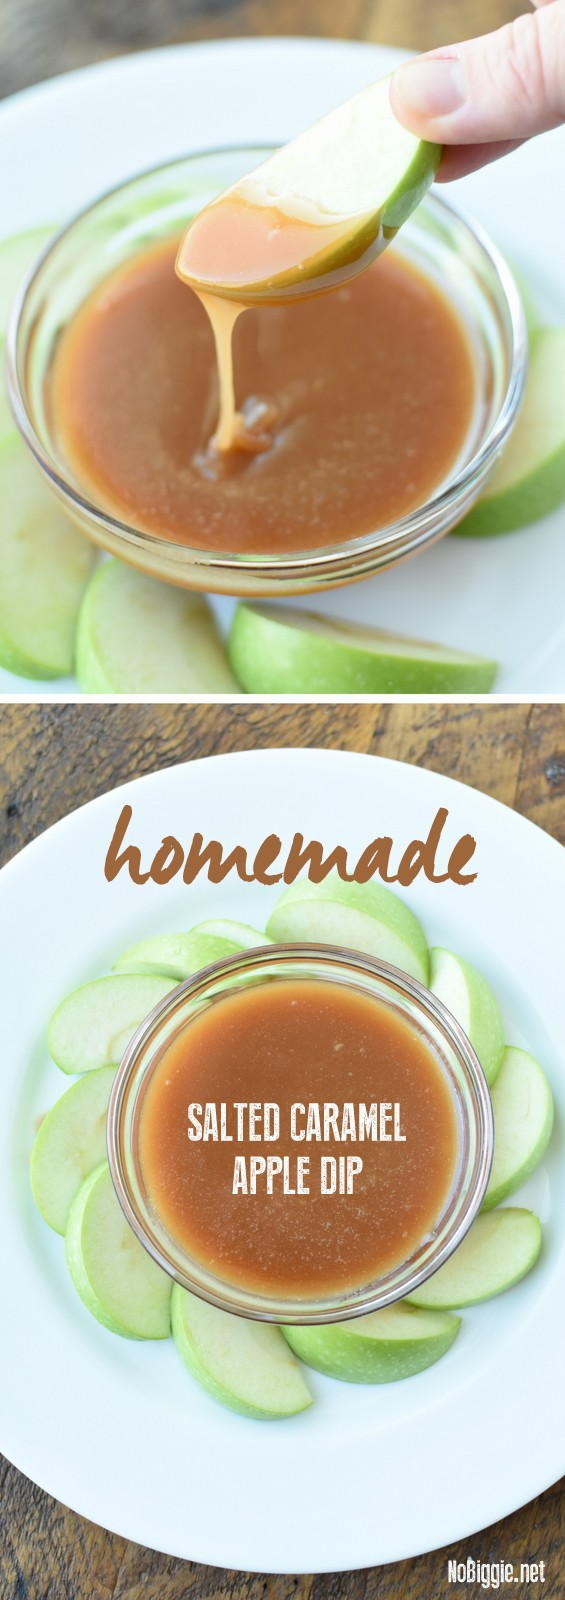 Homemade Salted Caramel Apple Dip | NoBiggie.net